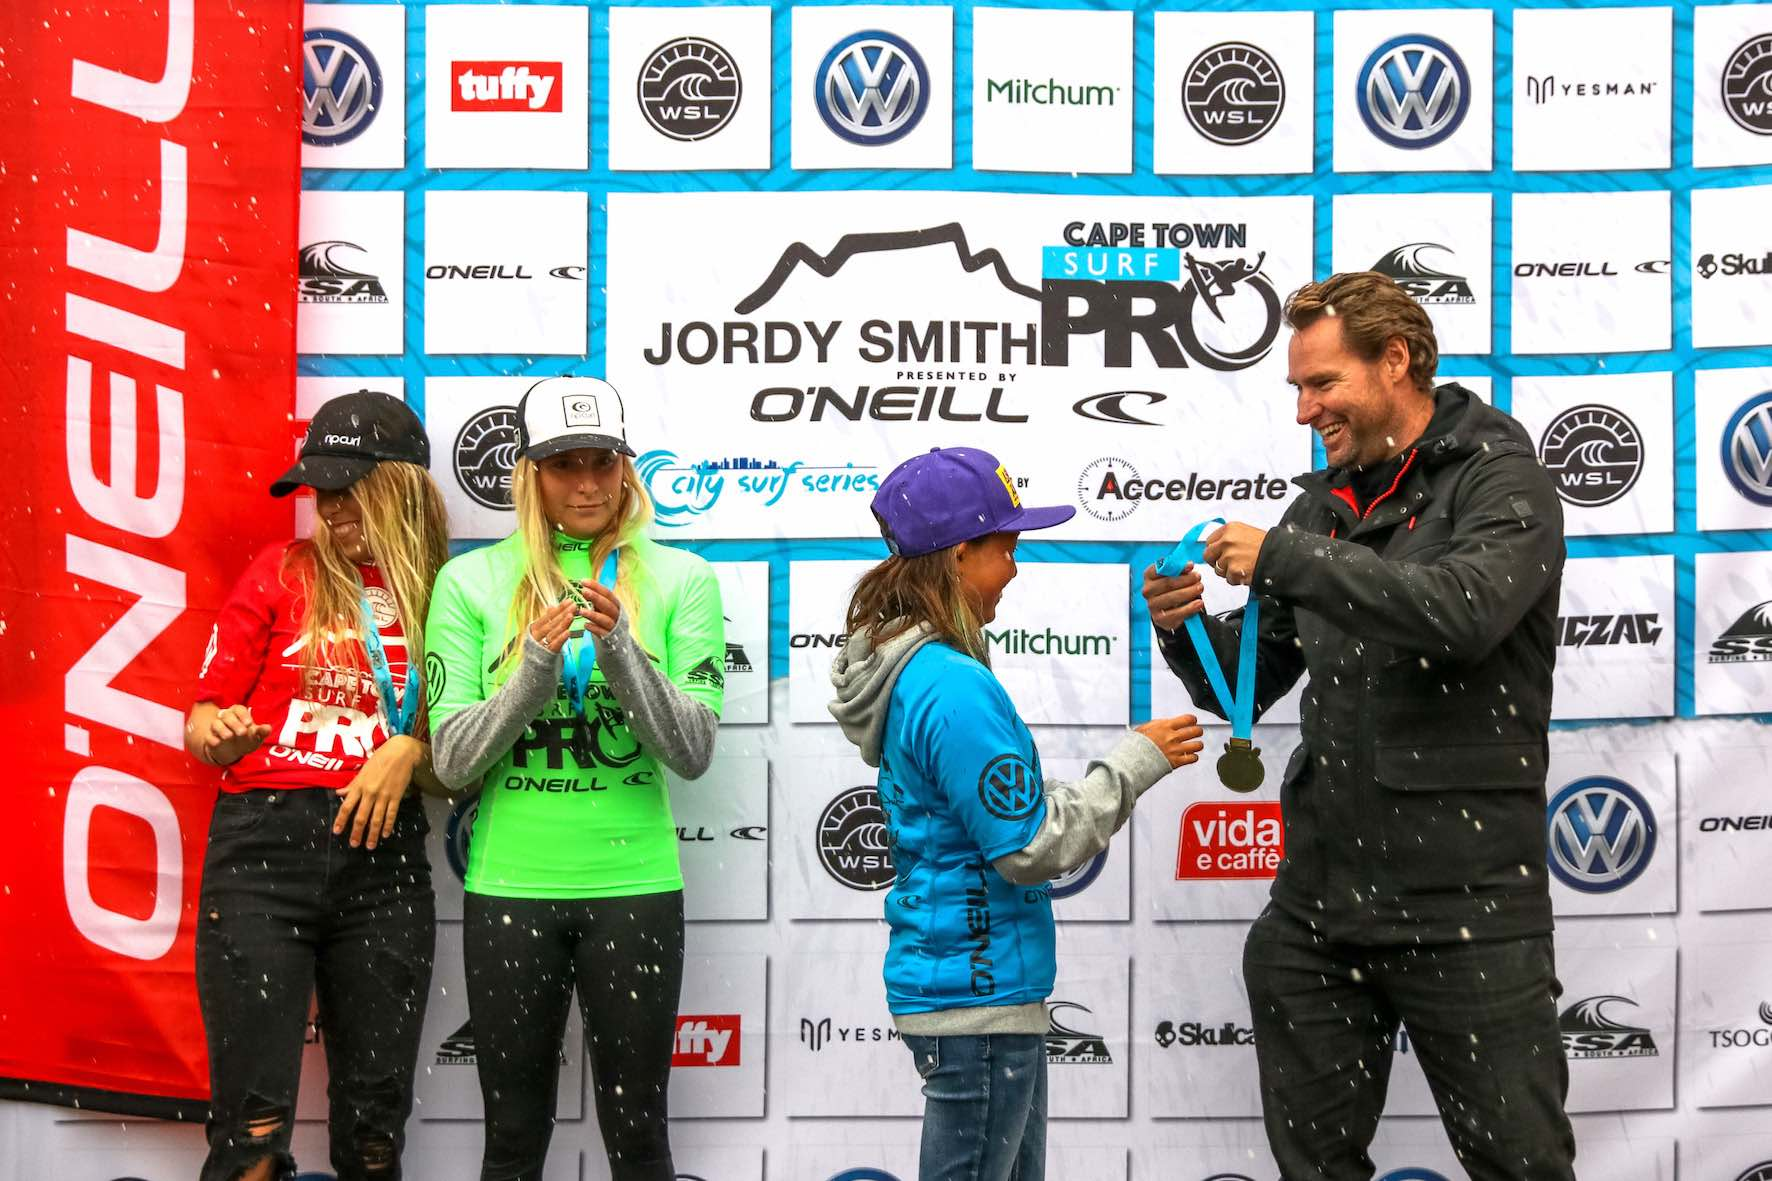 Jordy Smith Cape Town Surf Pro Women's Podium